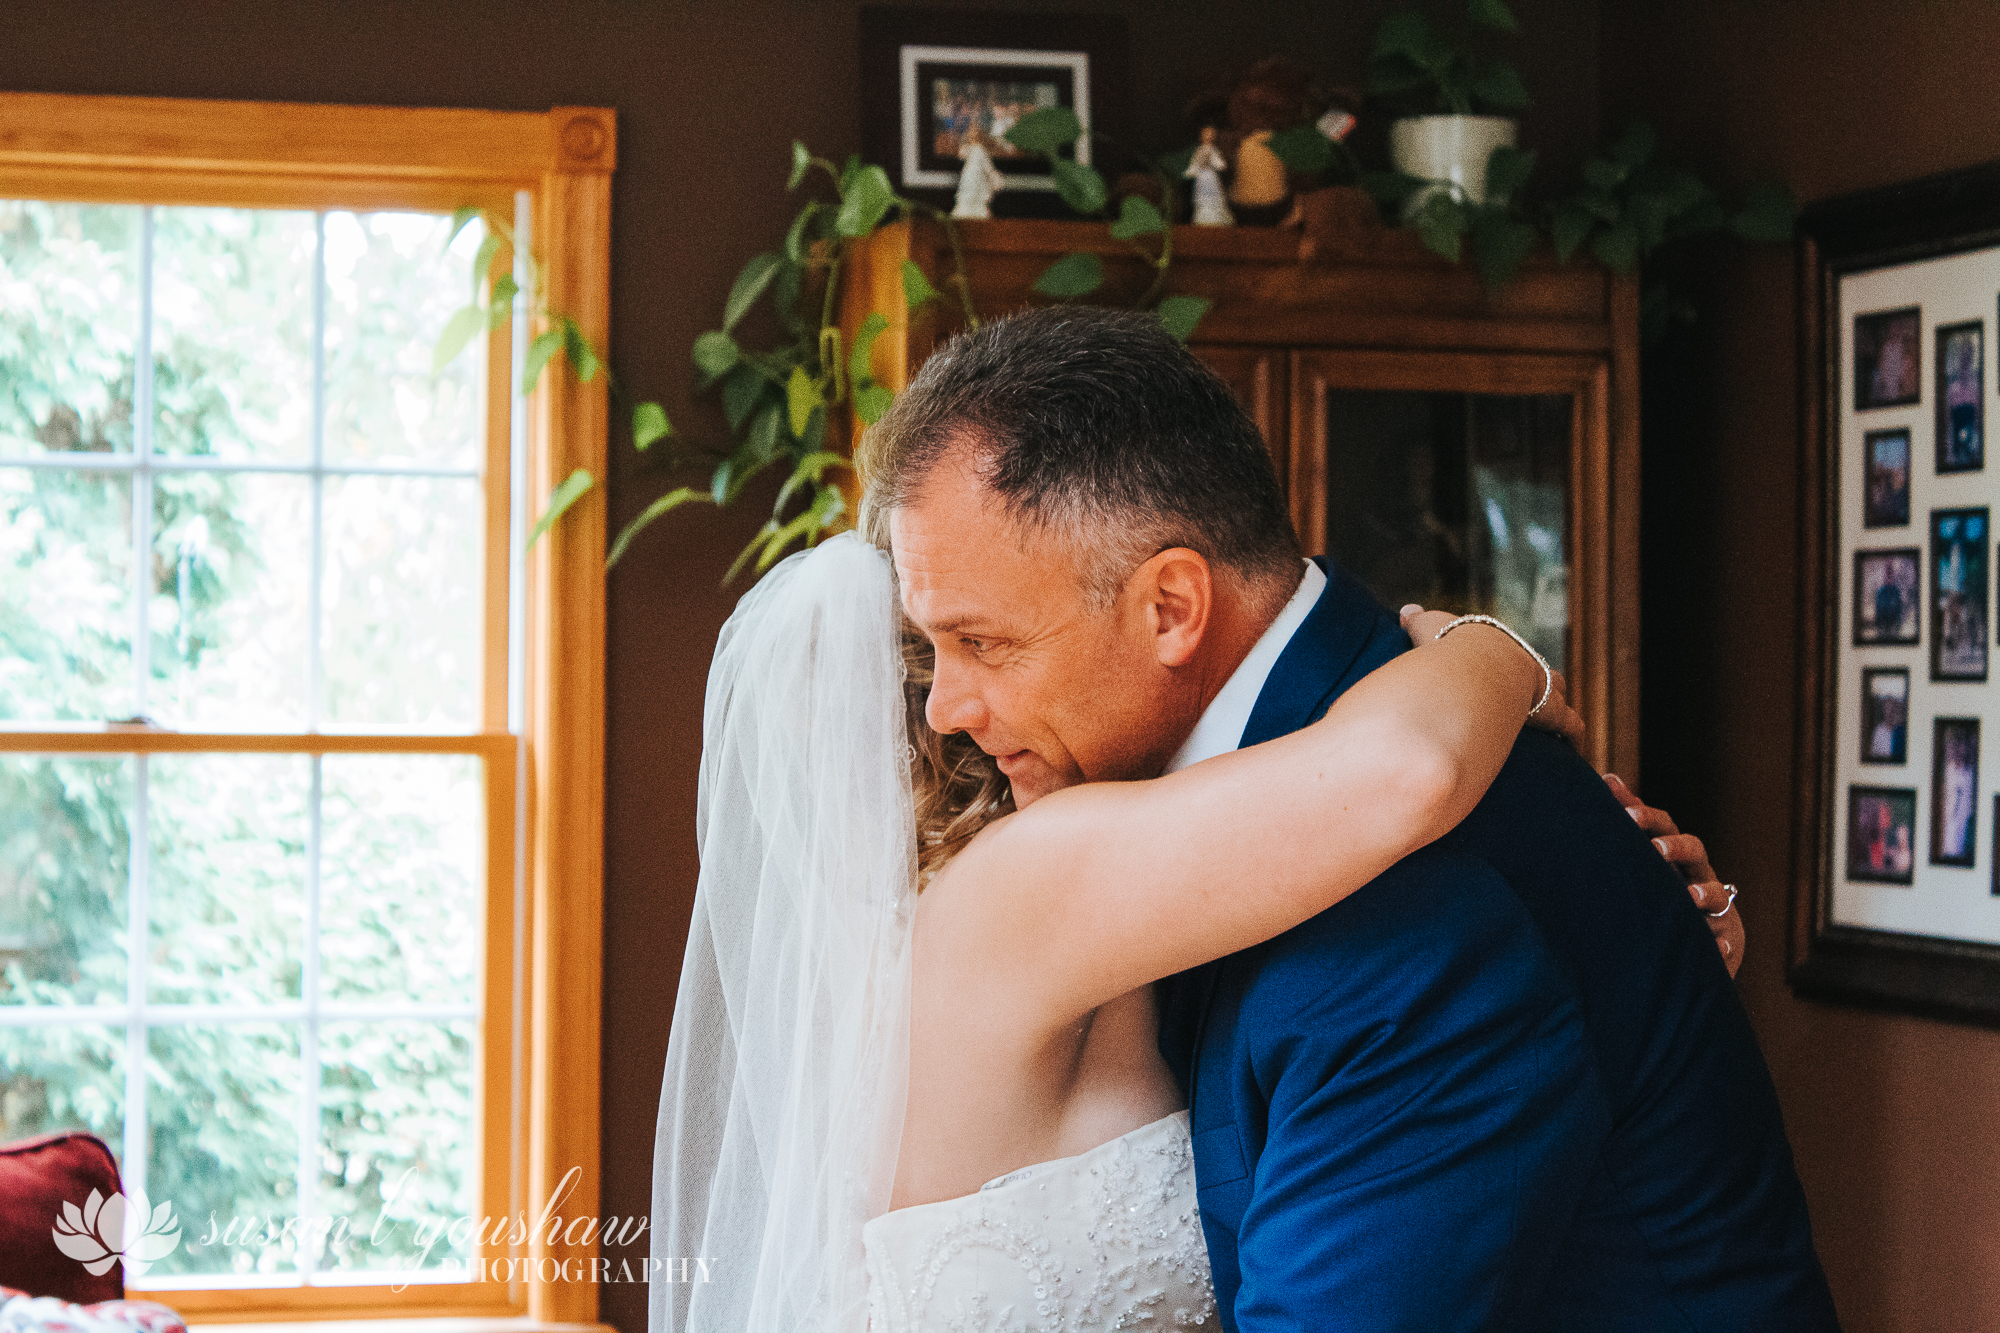 BLOG Kylie and corey Bennet 10-13-2018 SLY Photography LLC-6.jpg